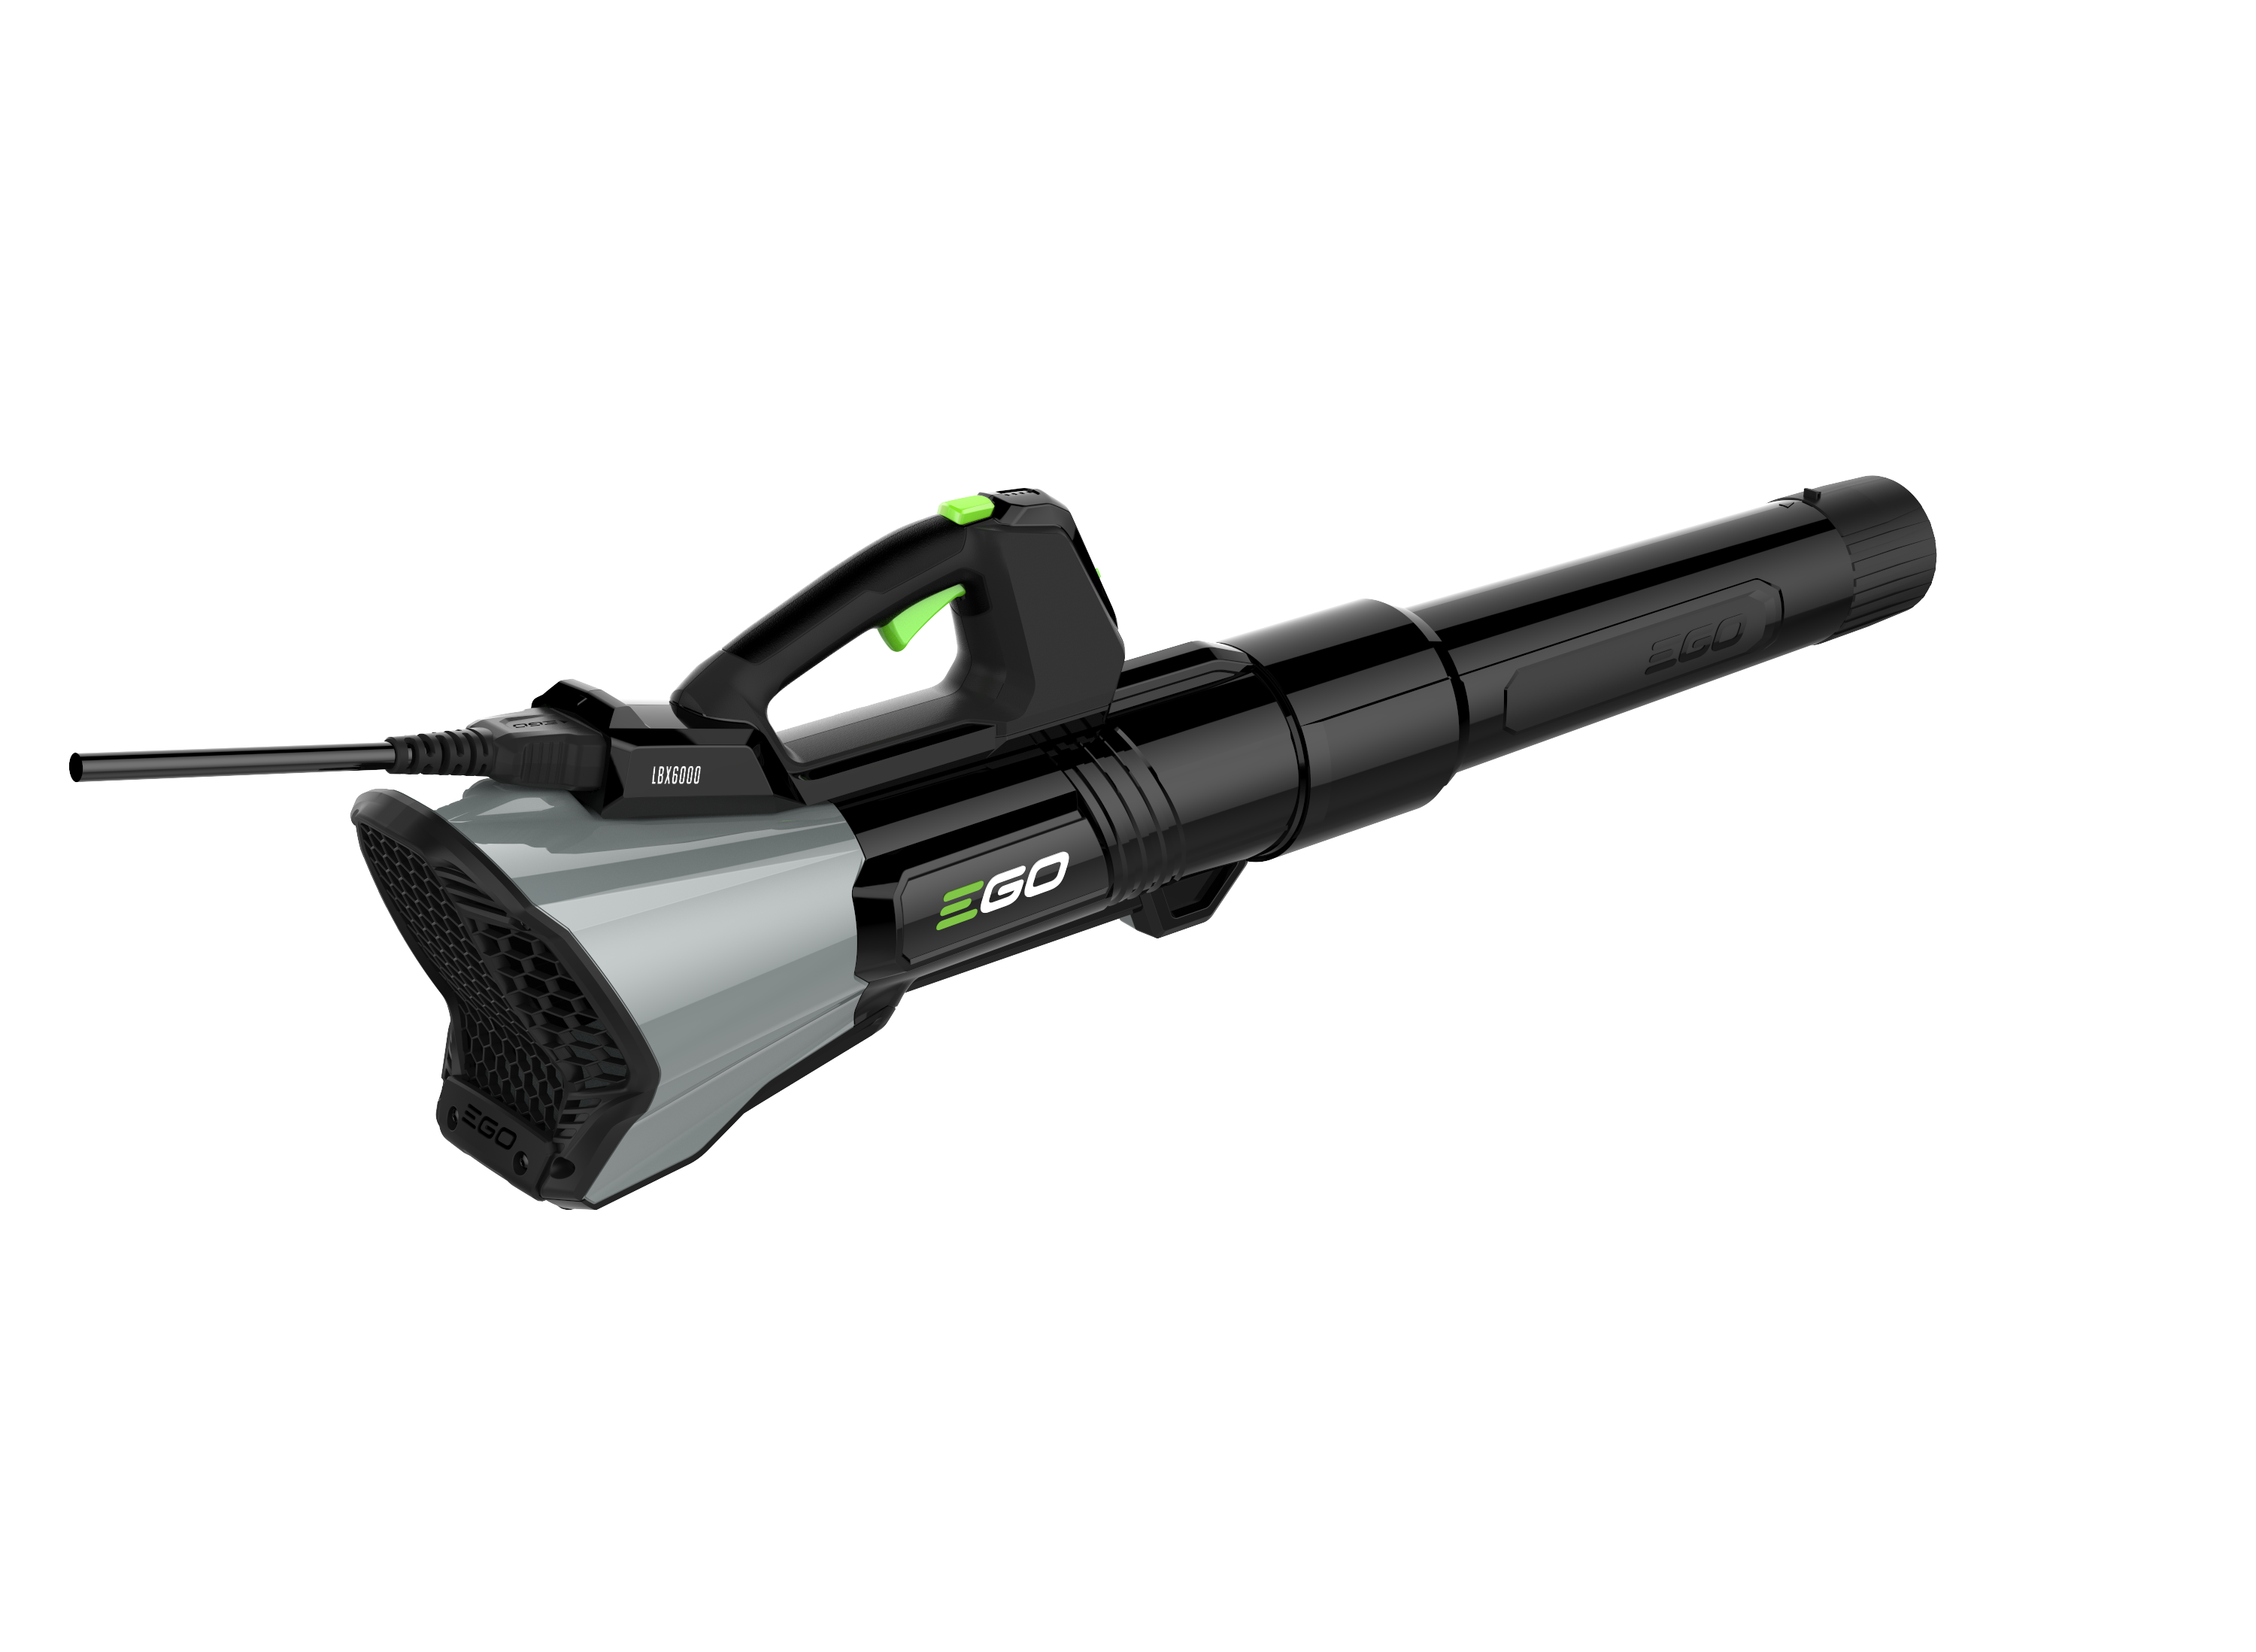 EGO LBX6000 Commercial Backpack Blower (shell only)